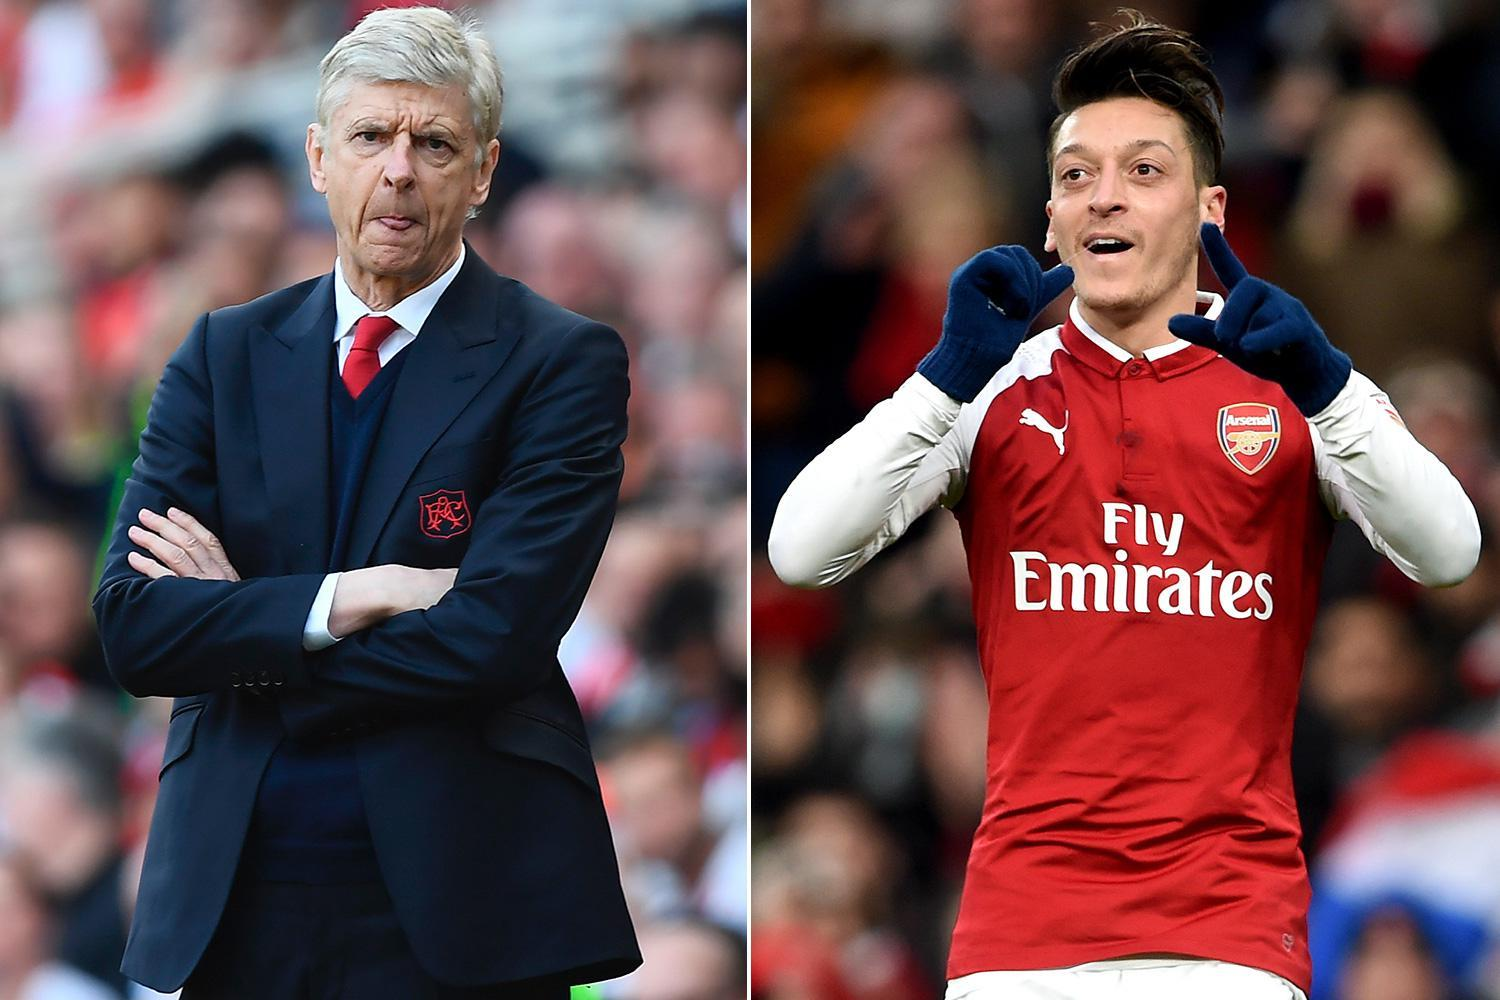 Arsenal boss Arsene Wenger 'increasingly confident' of securing new Mesut Ozil contract